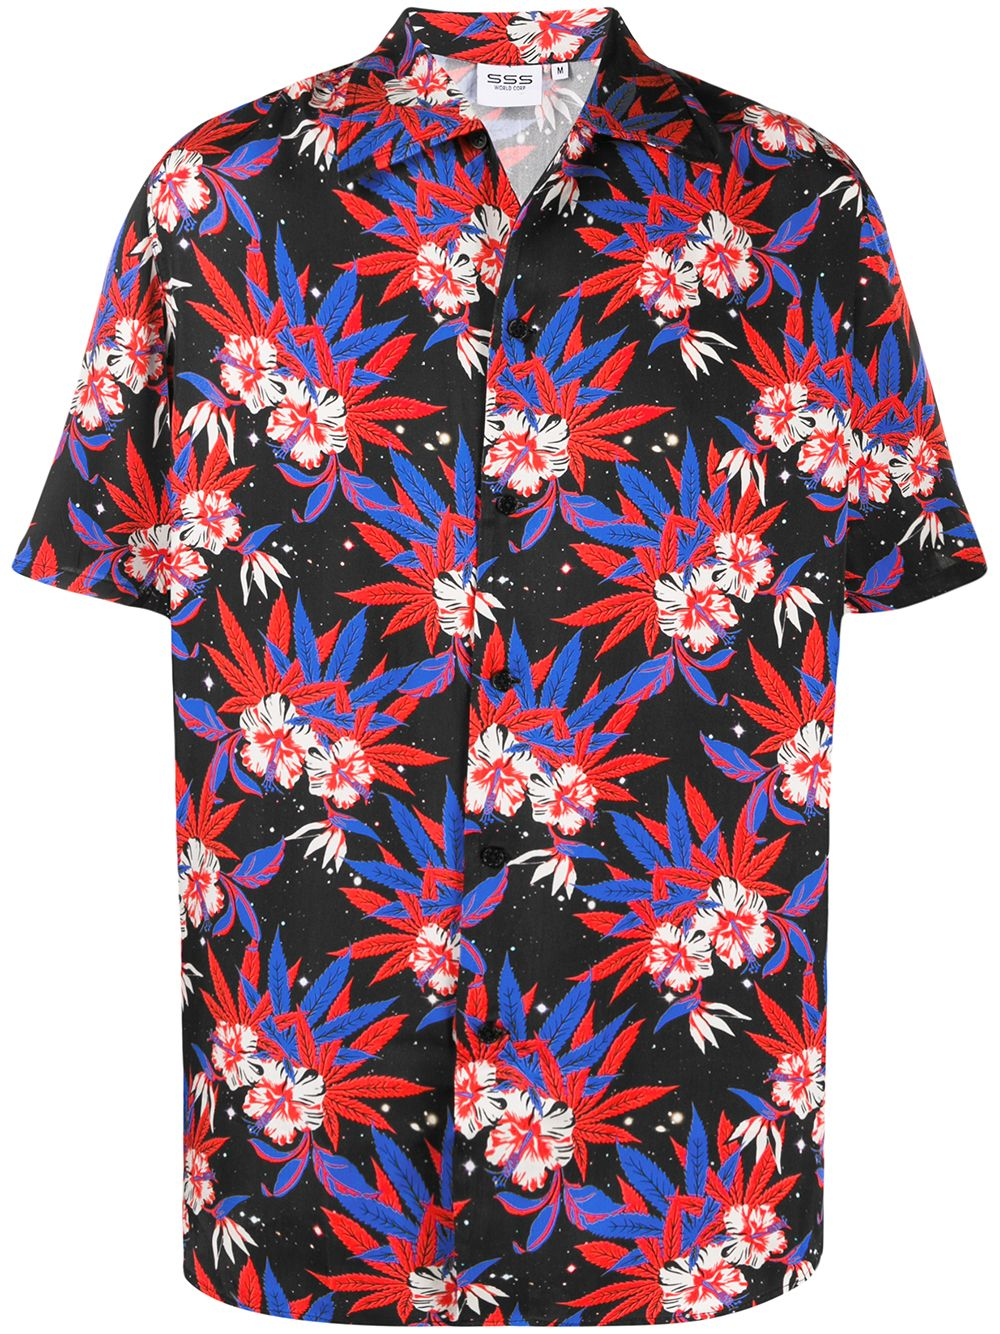 HAWAIIAN5 BLACK